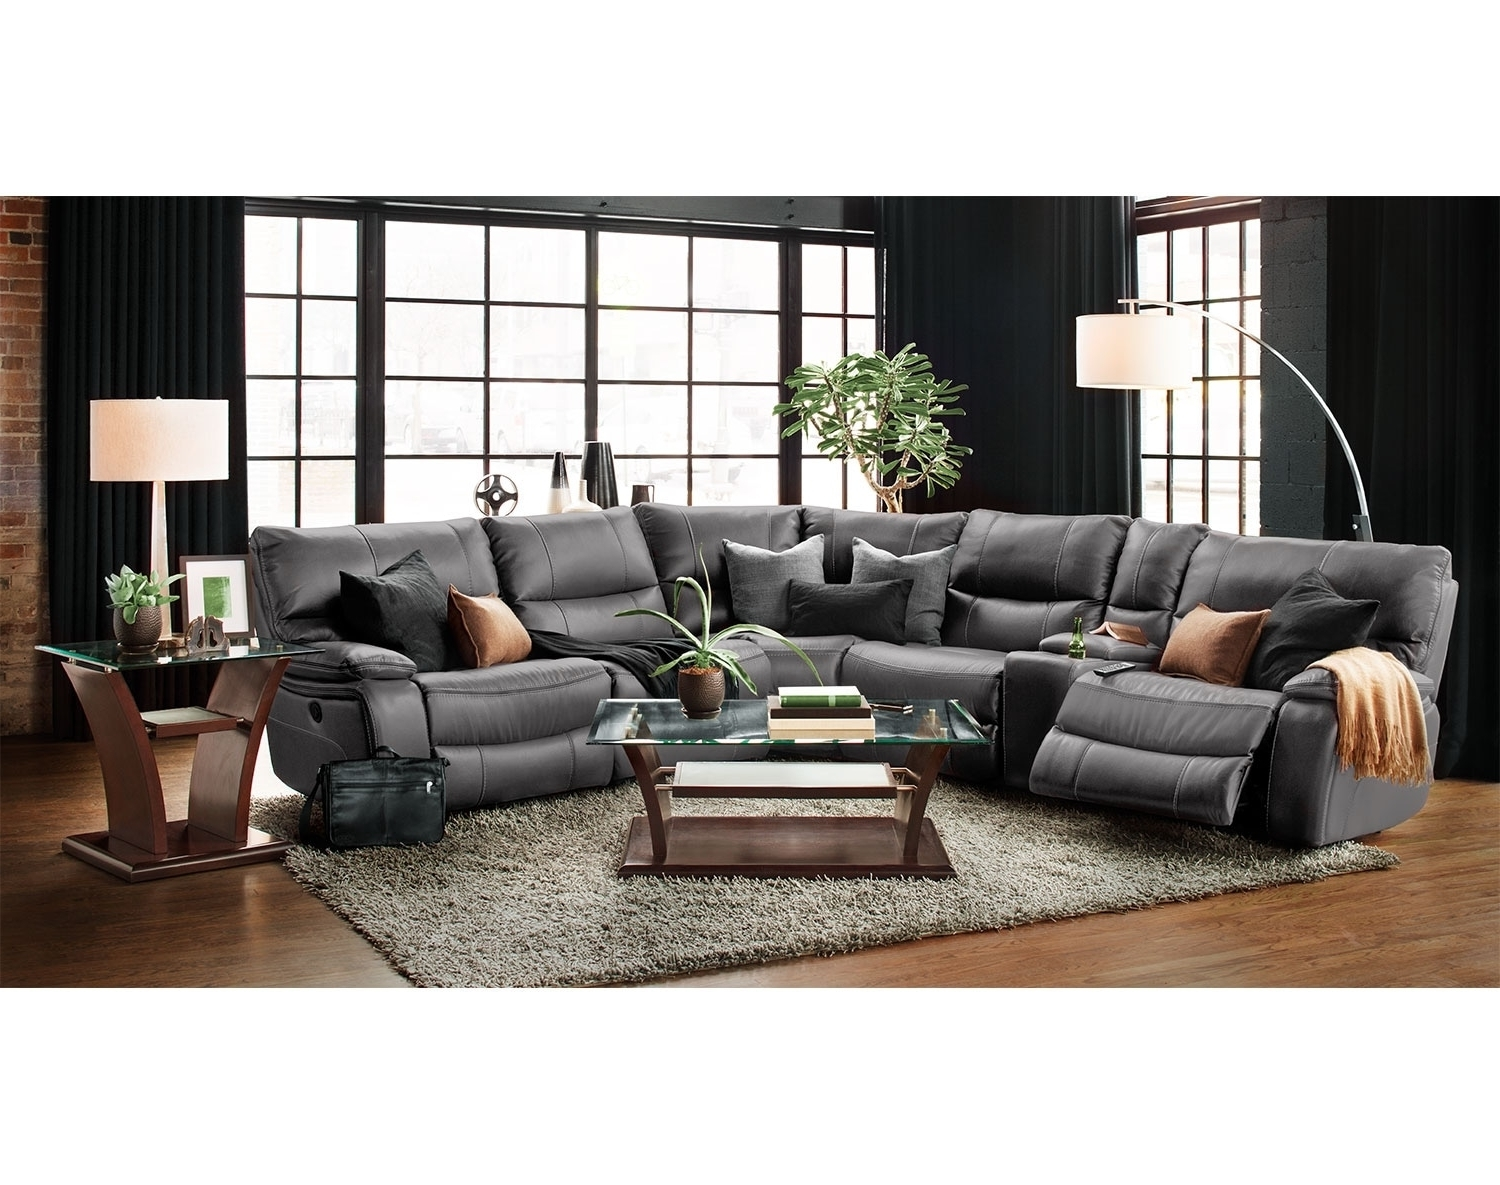 Latest Orlando Sectional Sofas Intended For The Orlando Collection – Gray (View 6 of 15)